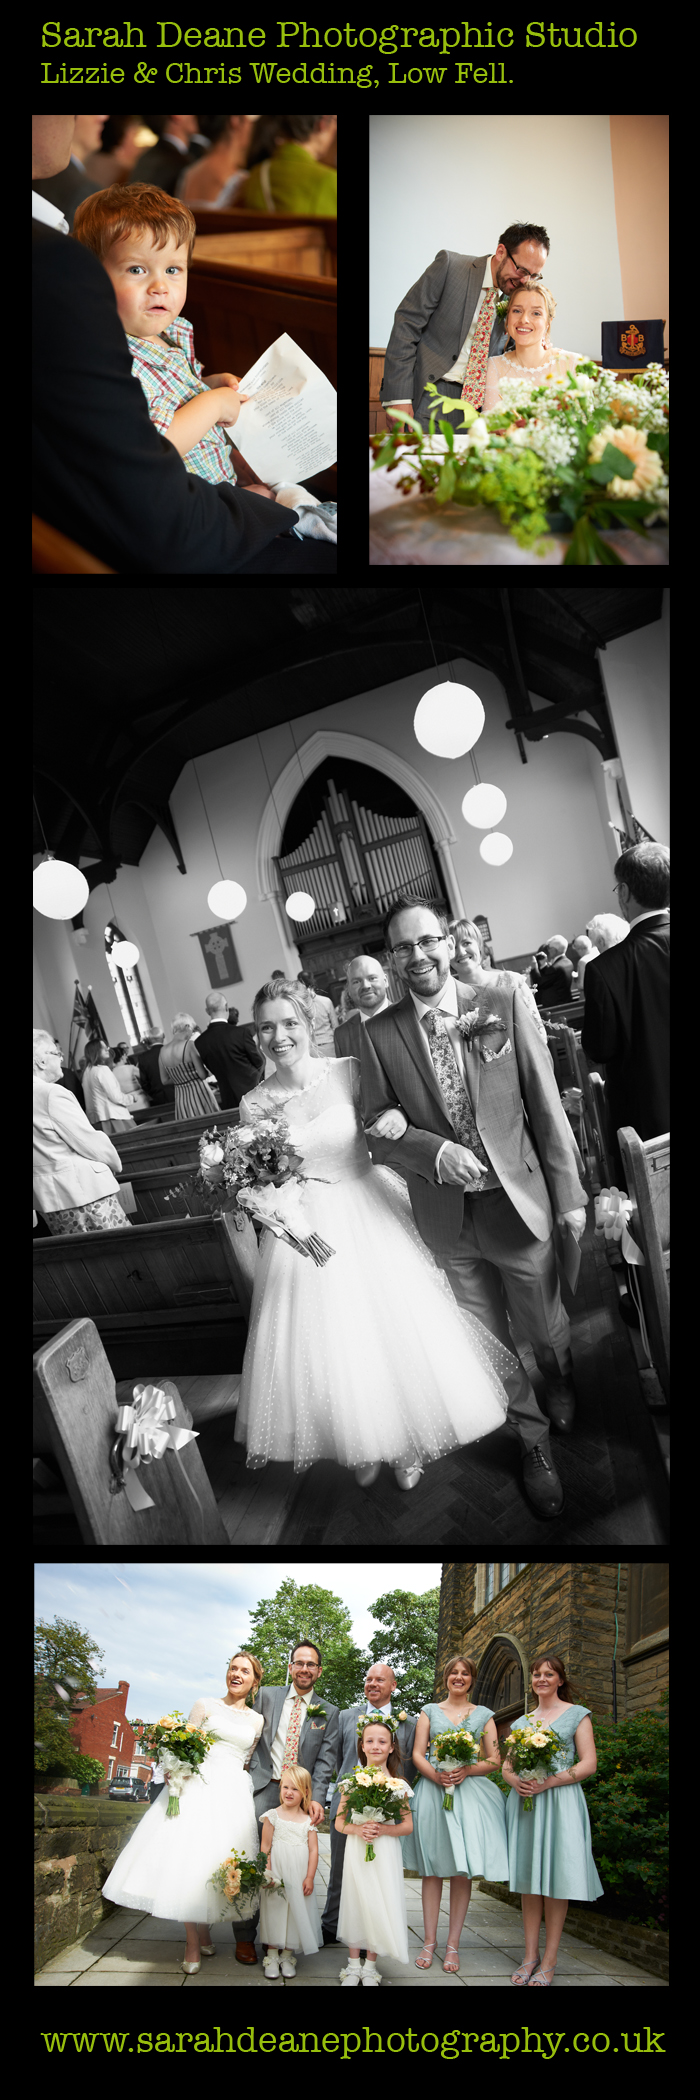 2 lizzie and chris wedding photos low fell gateshead & newcastle